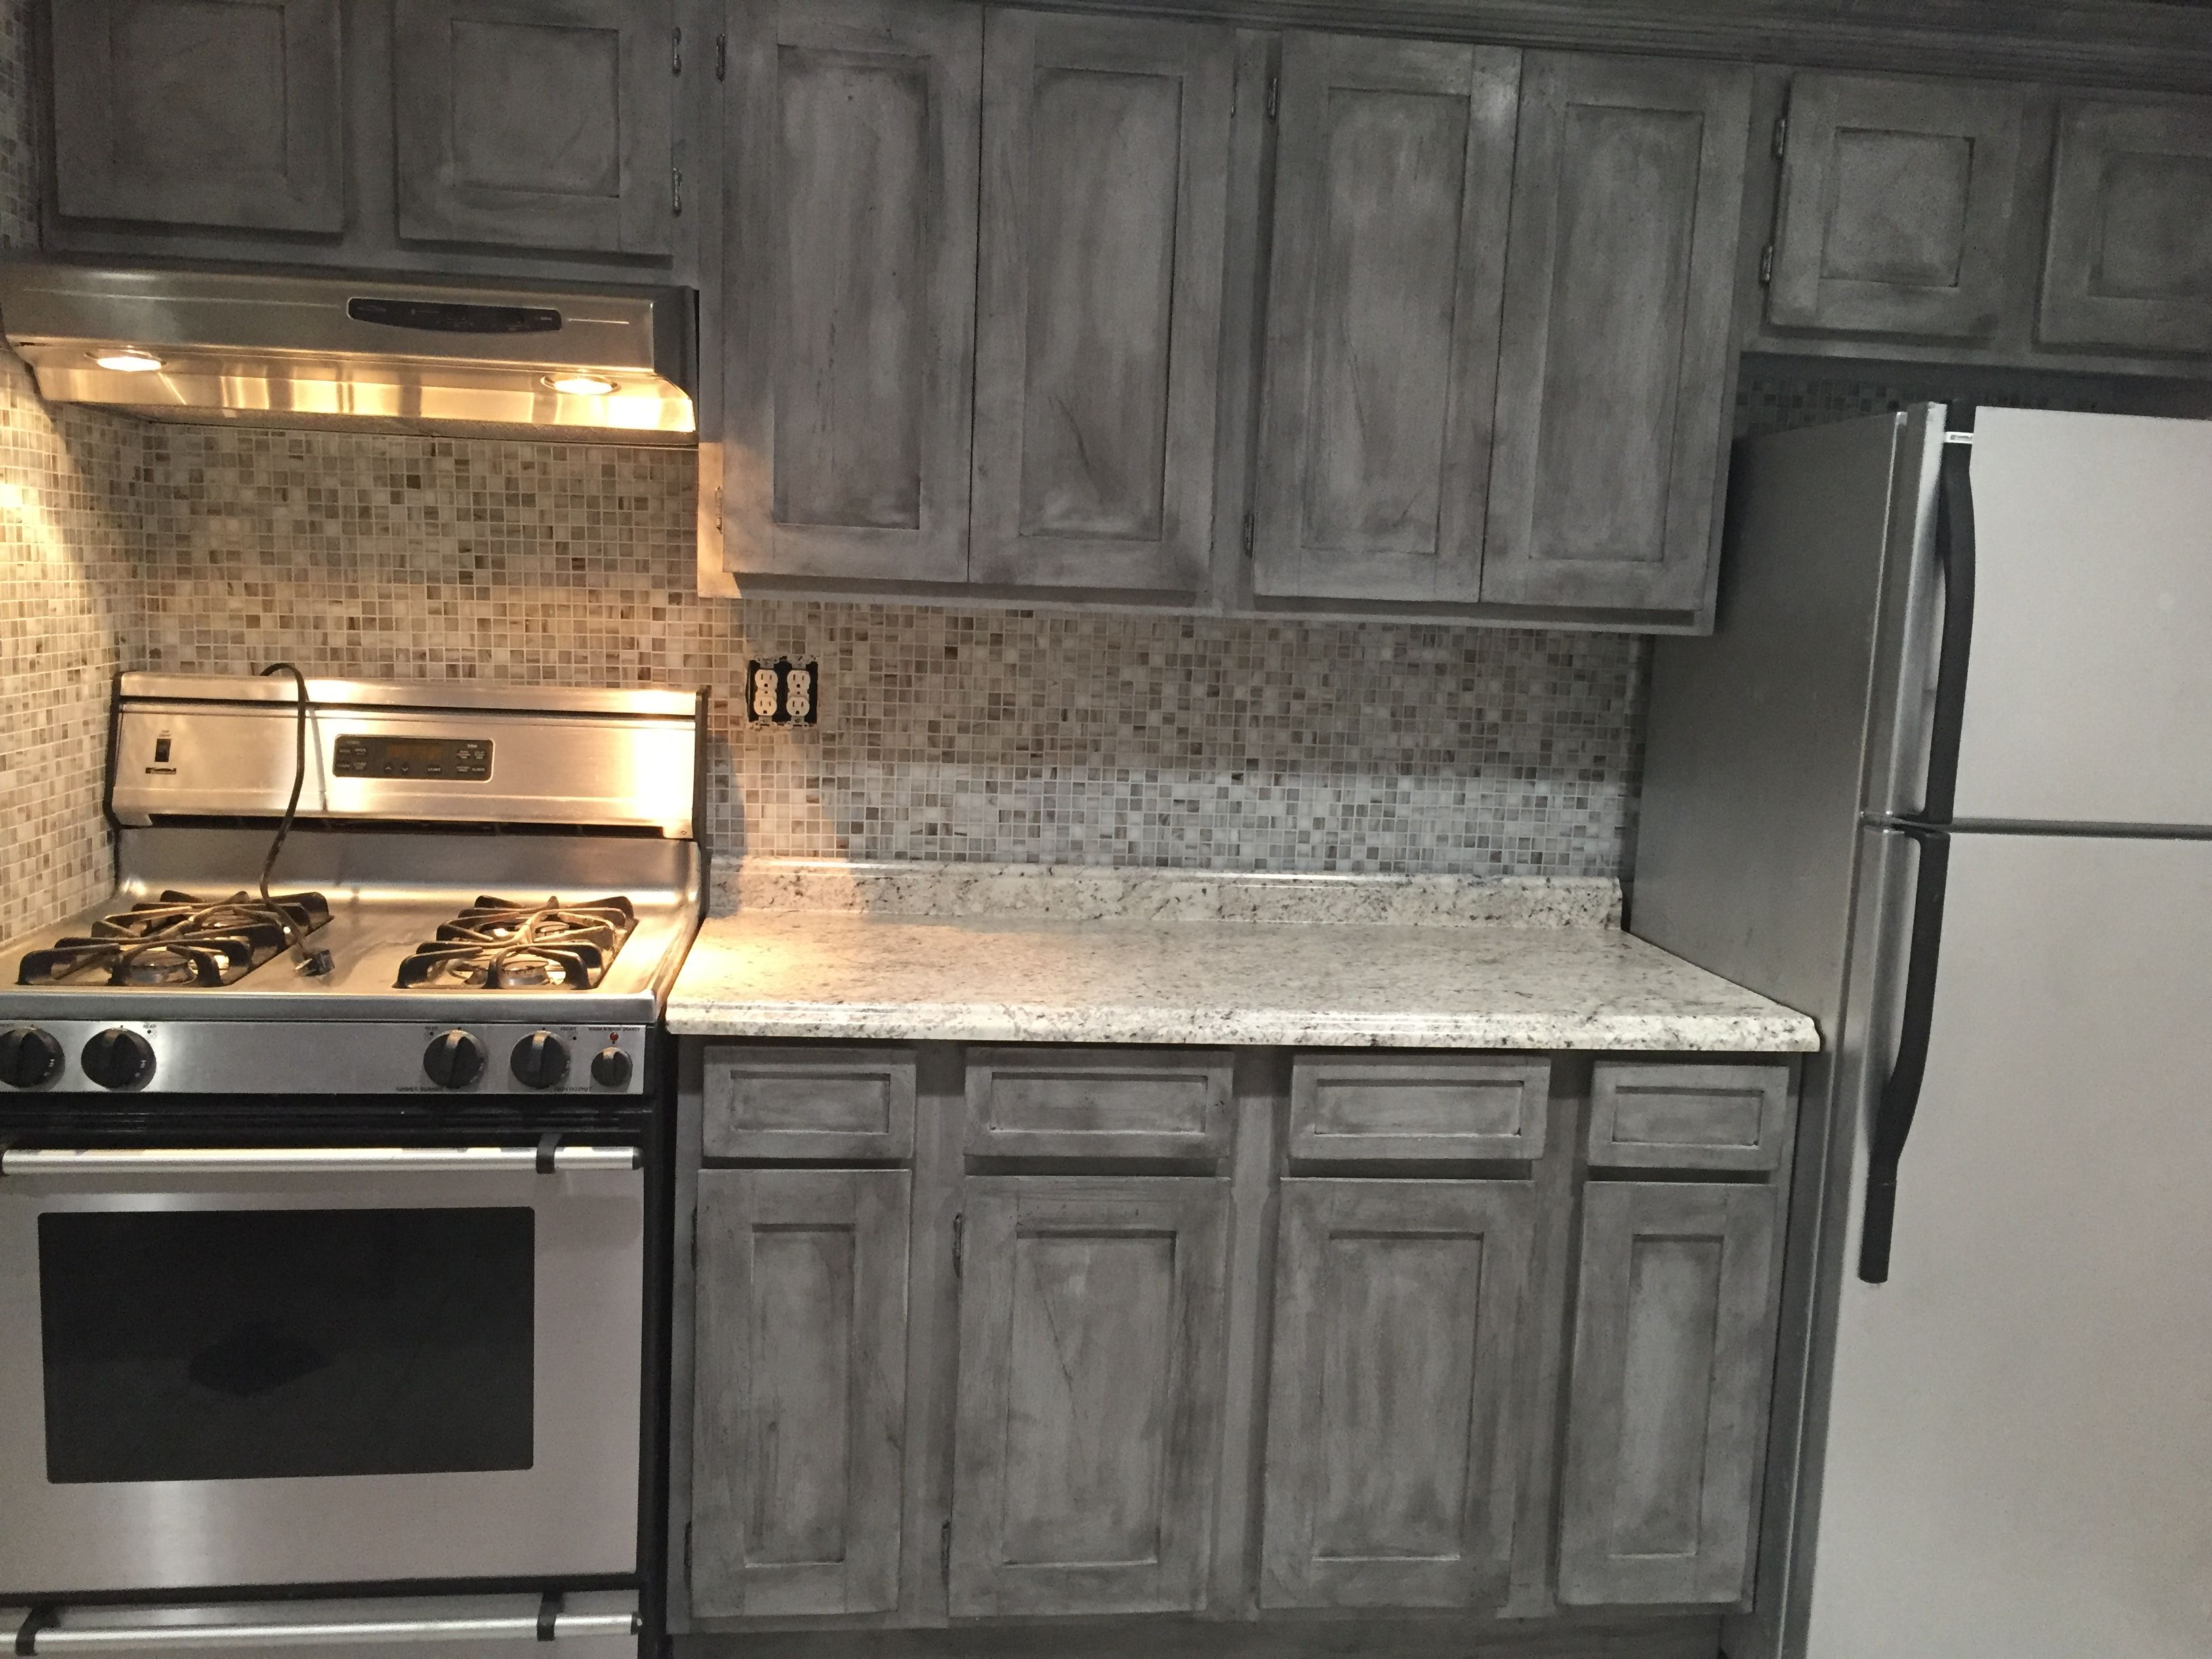 Kitchen Cabinets Painted Grey Annie Sloan Paris Grey With Black Wax On Kitchen Cabinets